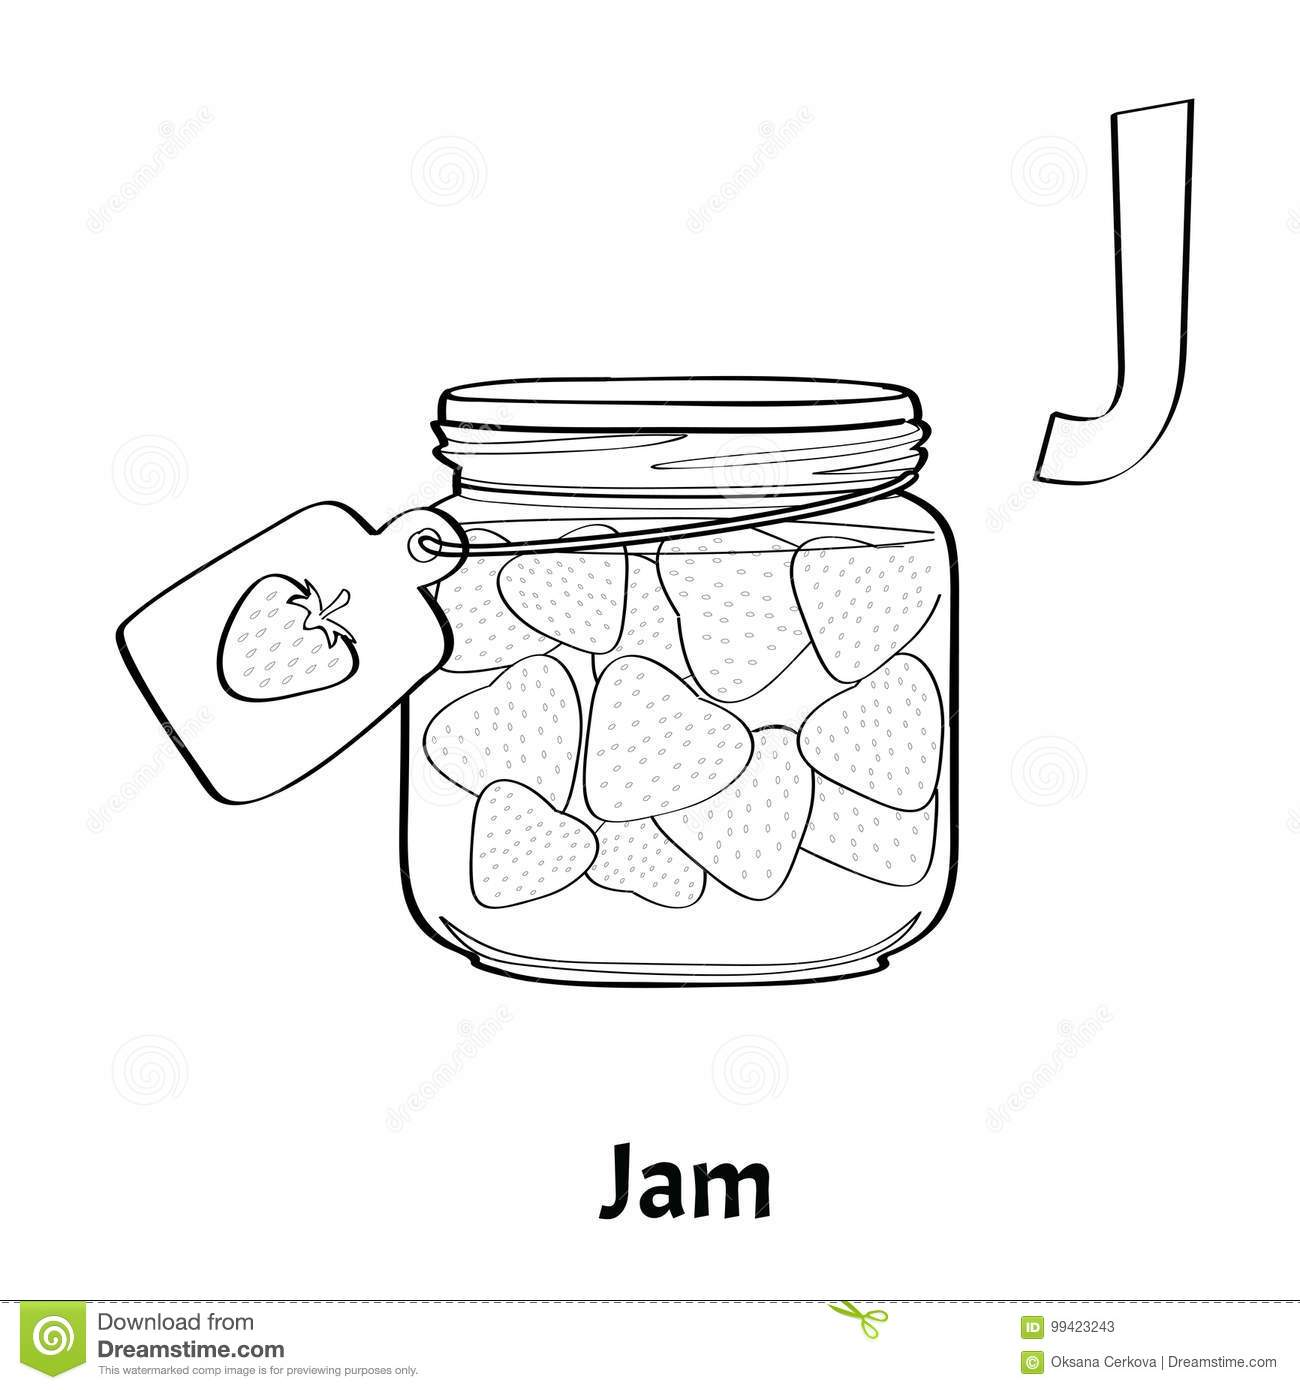 jam coloring pages for kids - photo#30